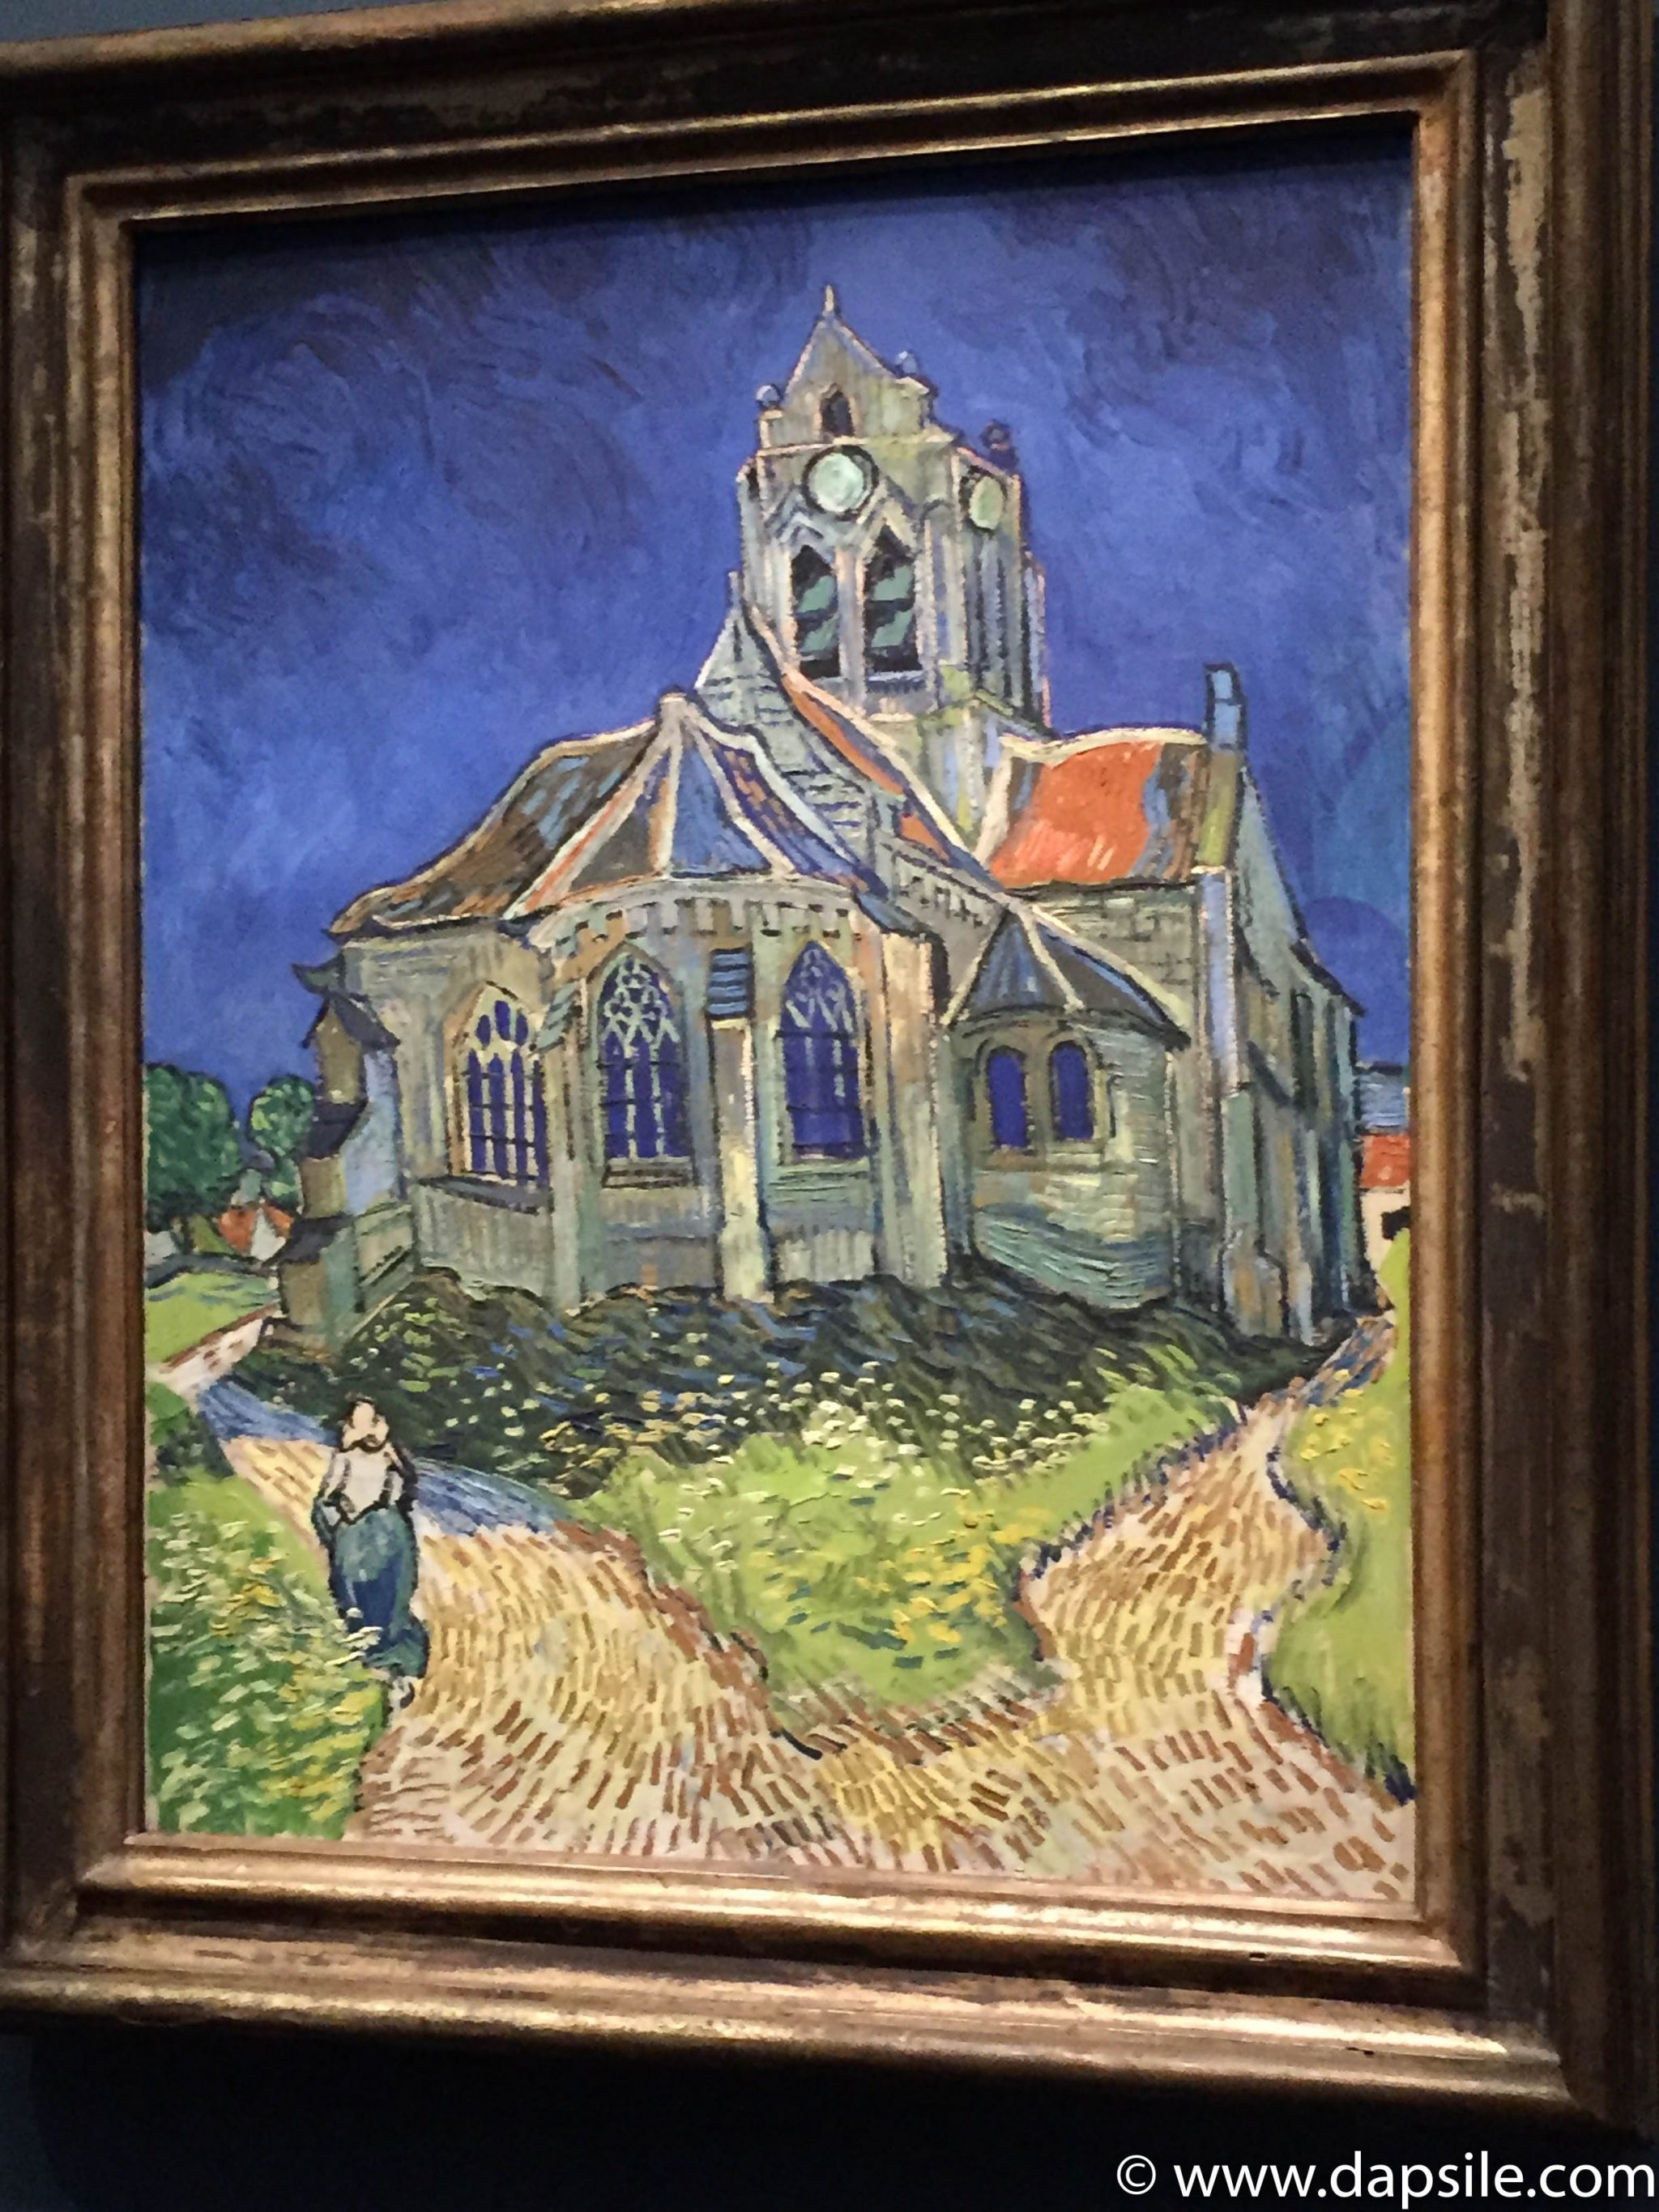 Vincent van Gogh Painting in the Musee d'Orsay in Paris